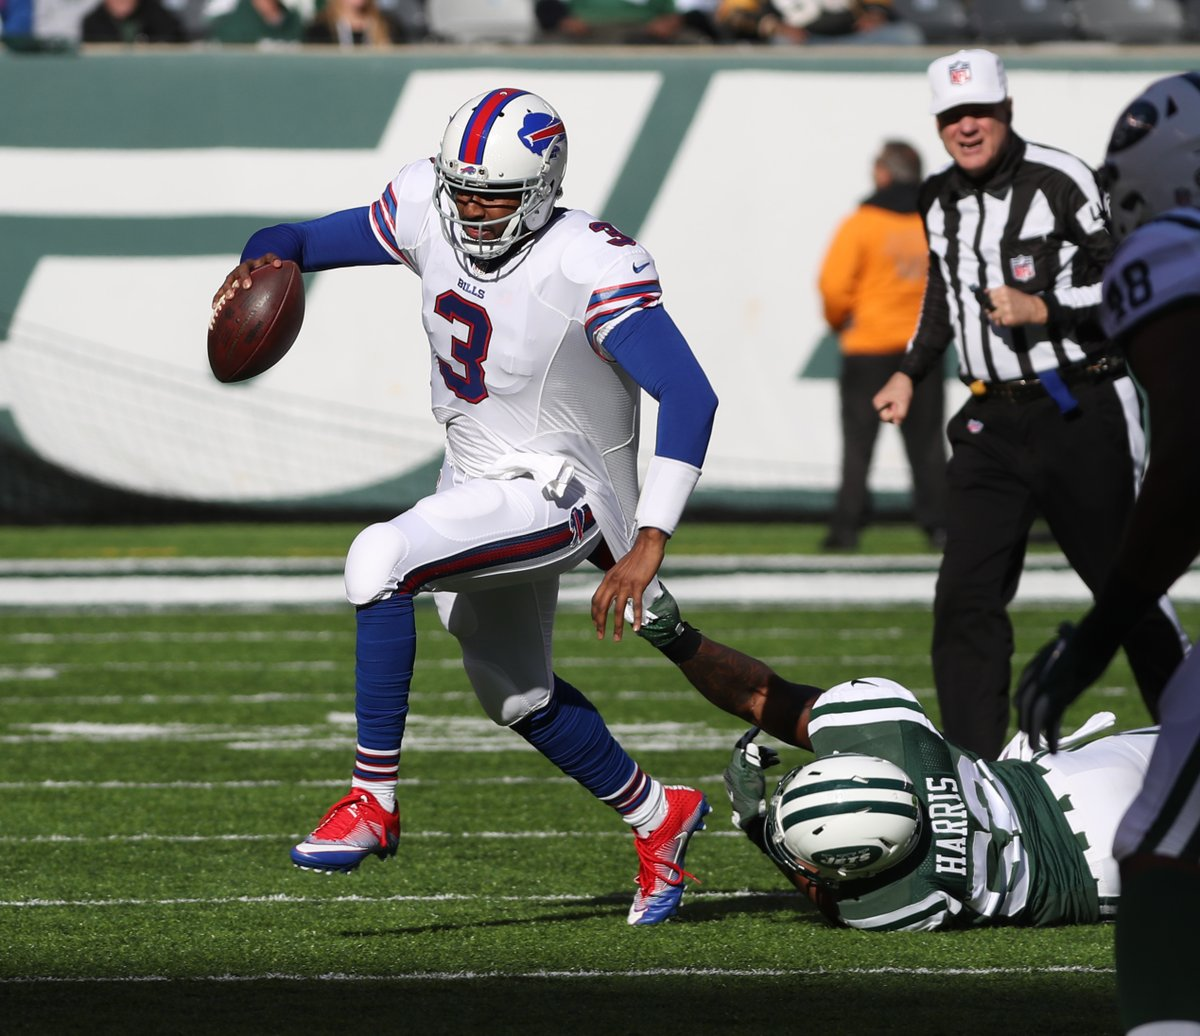 Bills free-agent quarterback EJ Manuel is expected to sign with the Raiders, per ESPN. (James P. McCoy/Buffalo News)